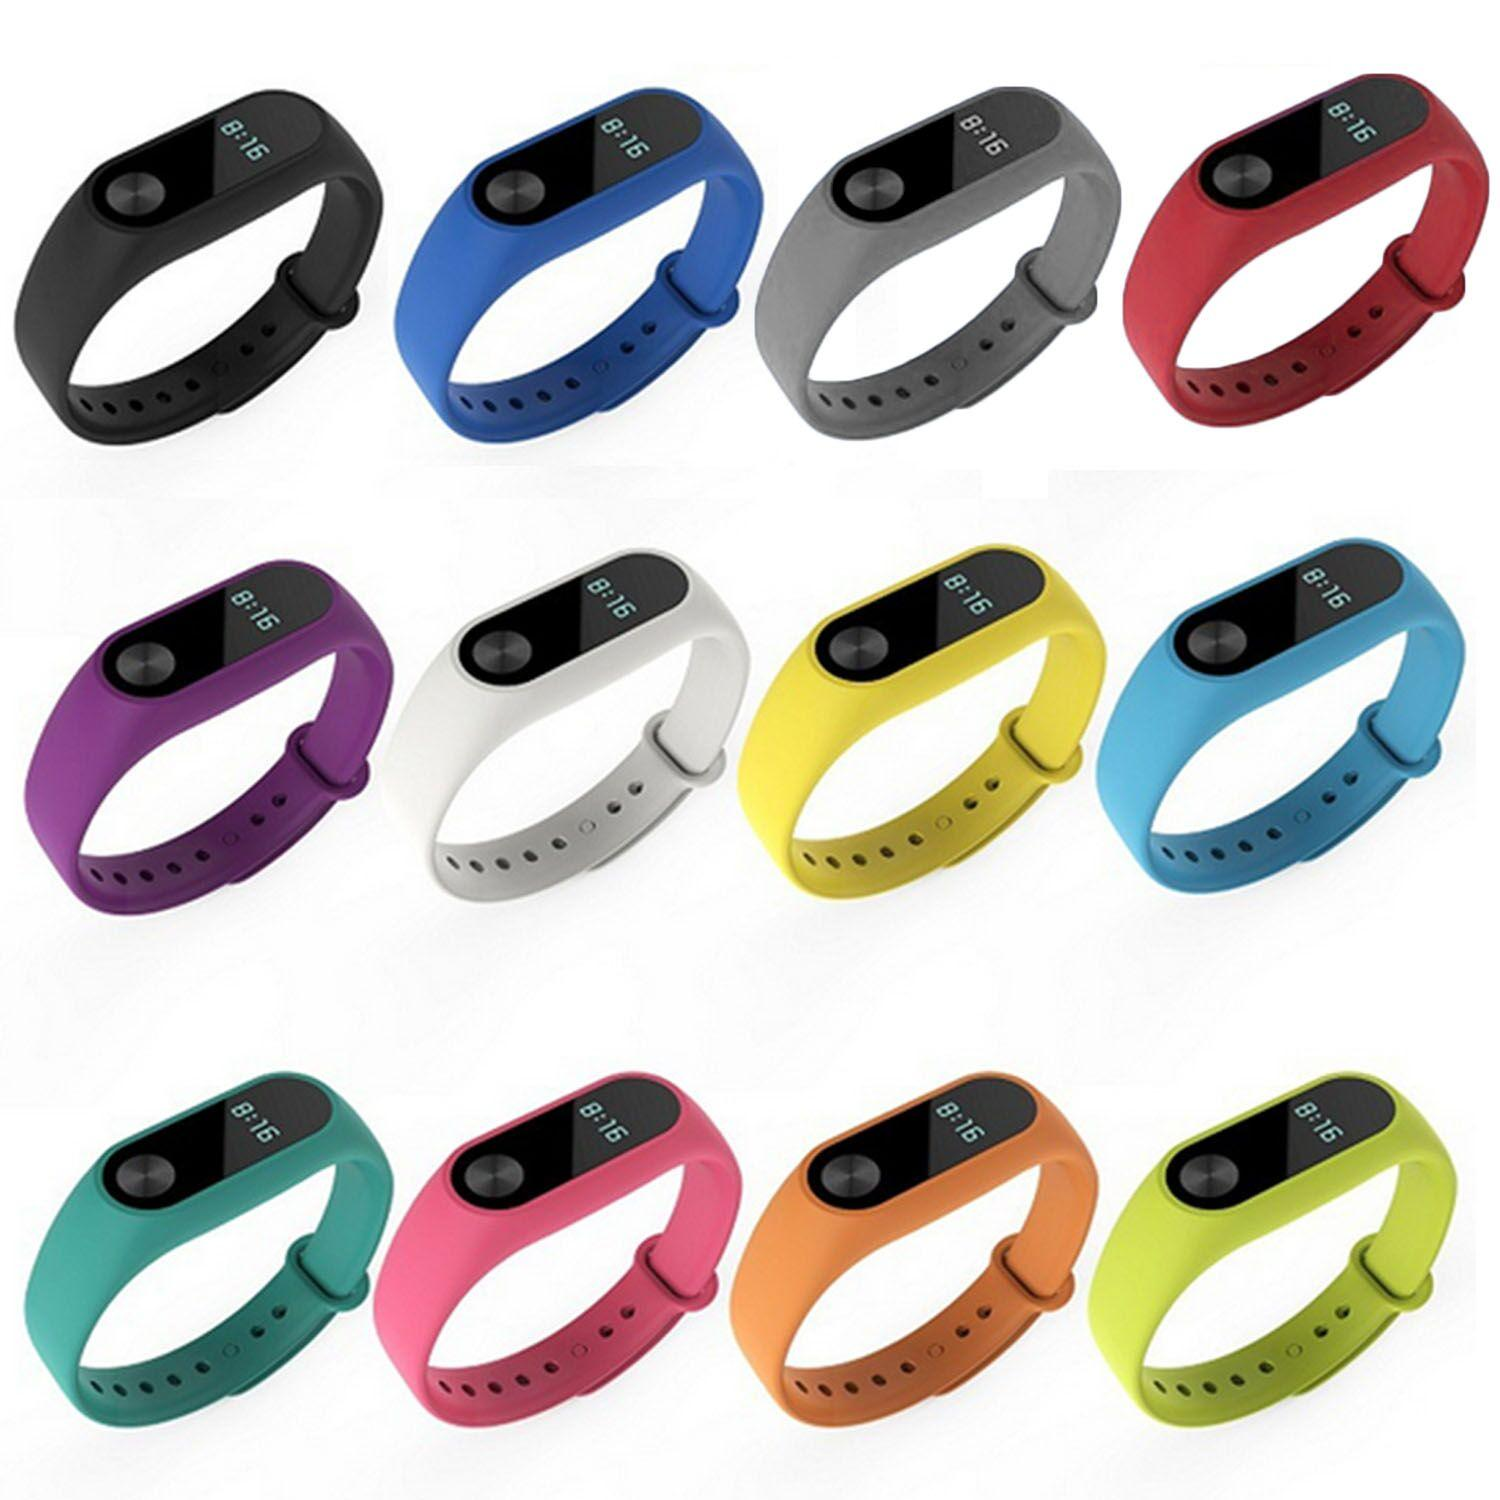 12 pcs Silicone Original Replacement Watchband Wrist Strap for Xiao Mi Band 2 Tracker Smart Watchband Bracelet - intl